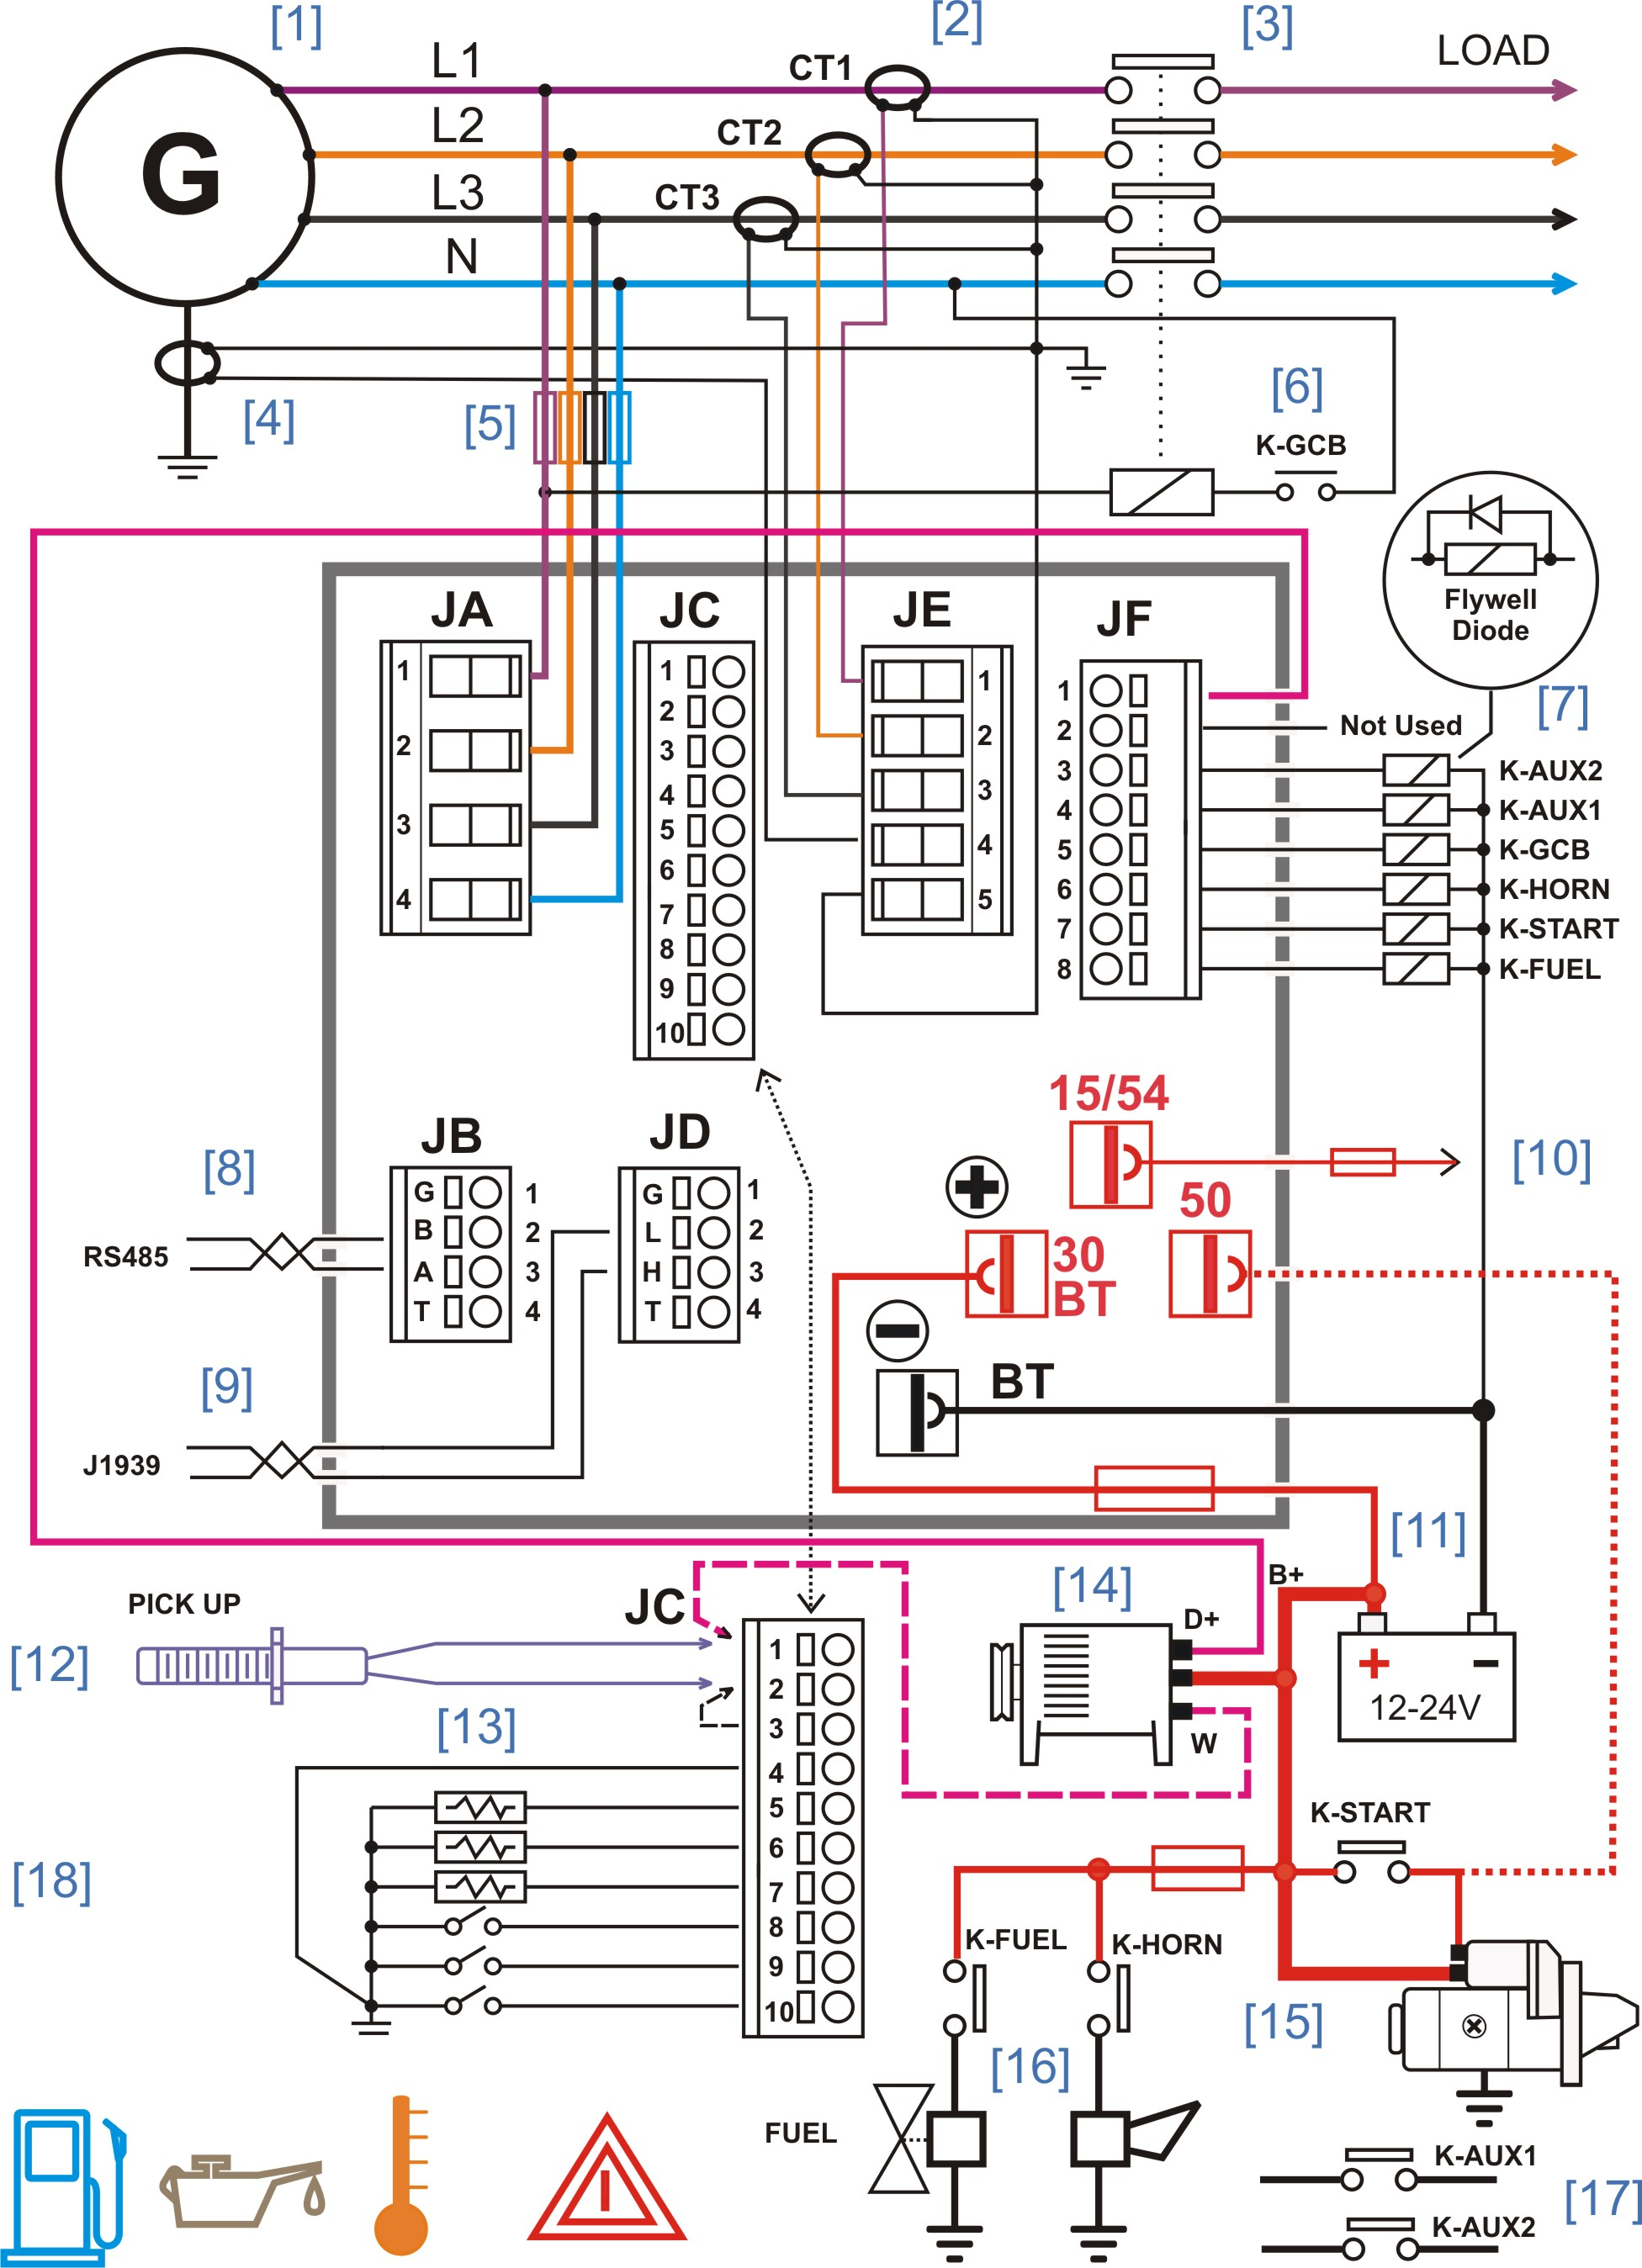 control panel genset wiring diagram block and schematic diagrams u2022 rh lazysupply co genset controller wiring diagram